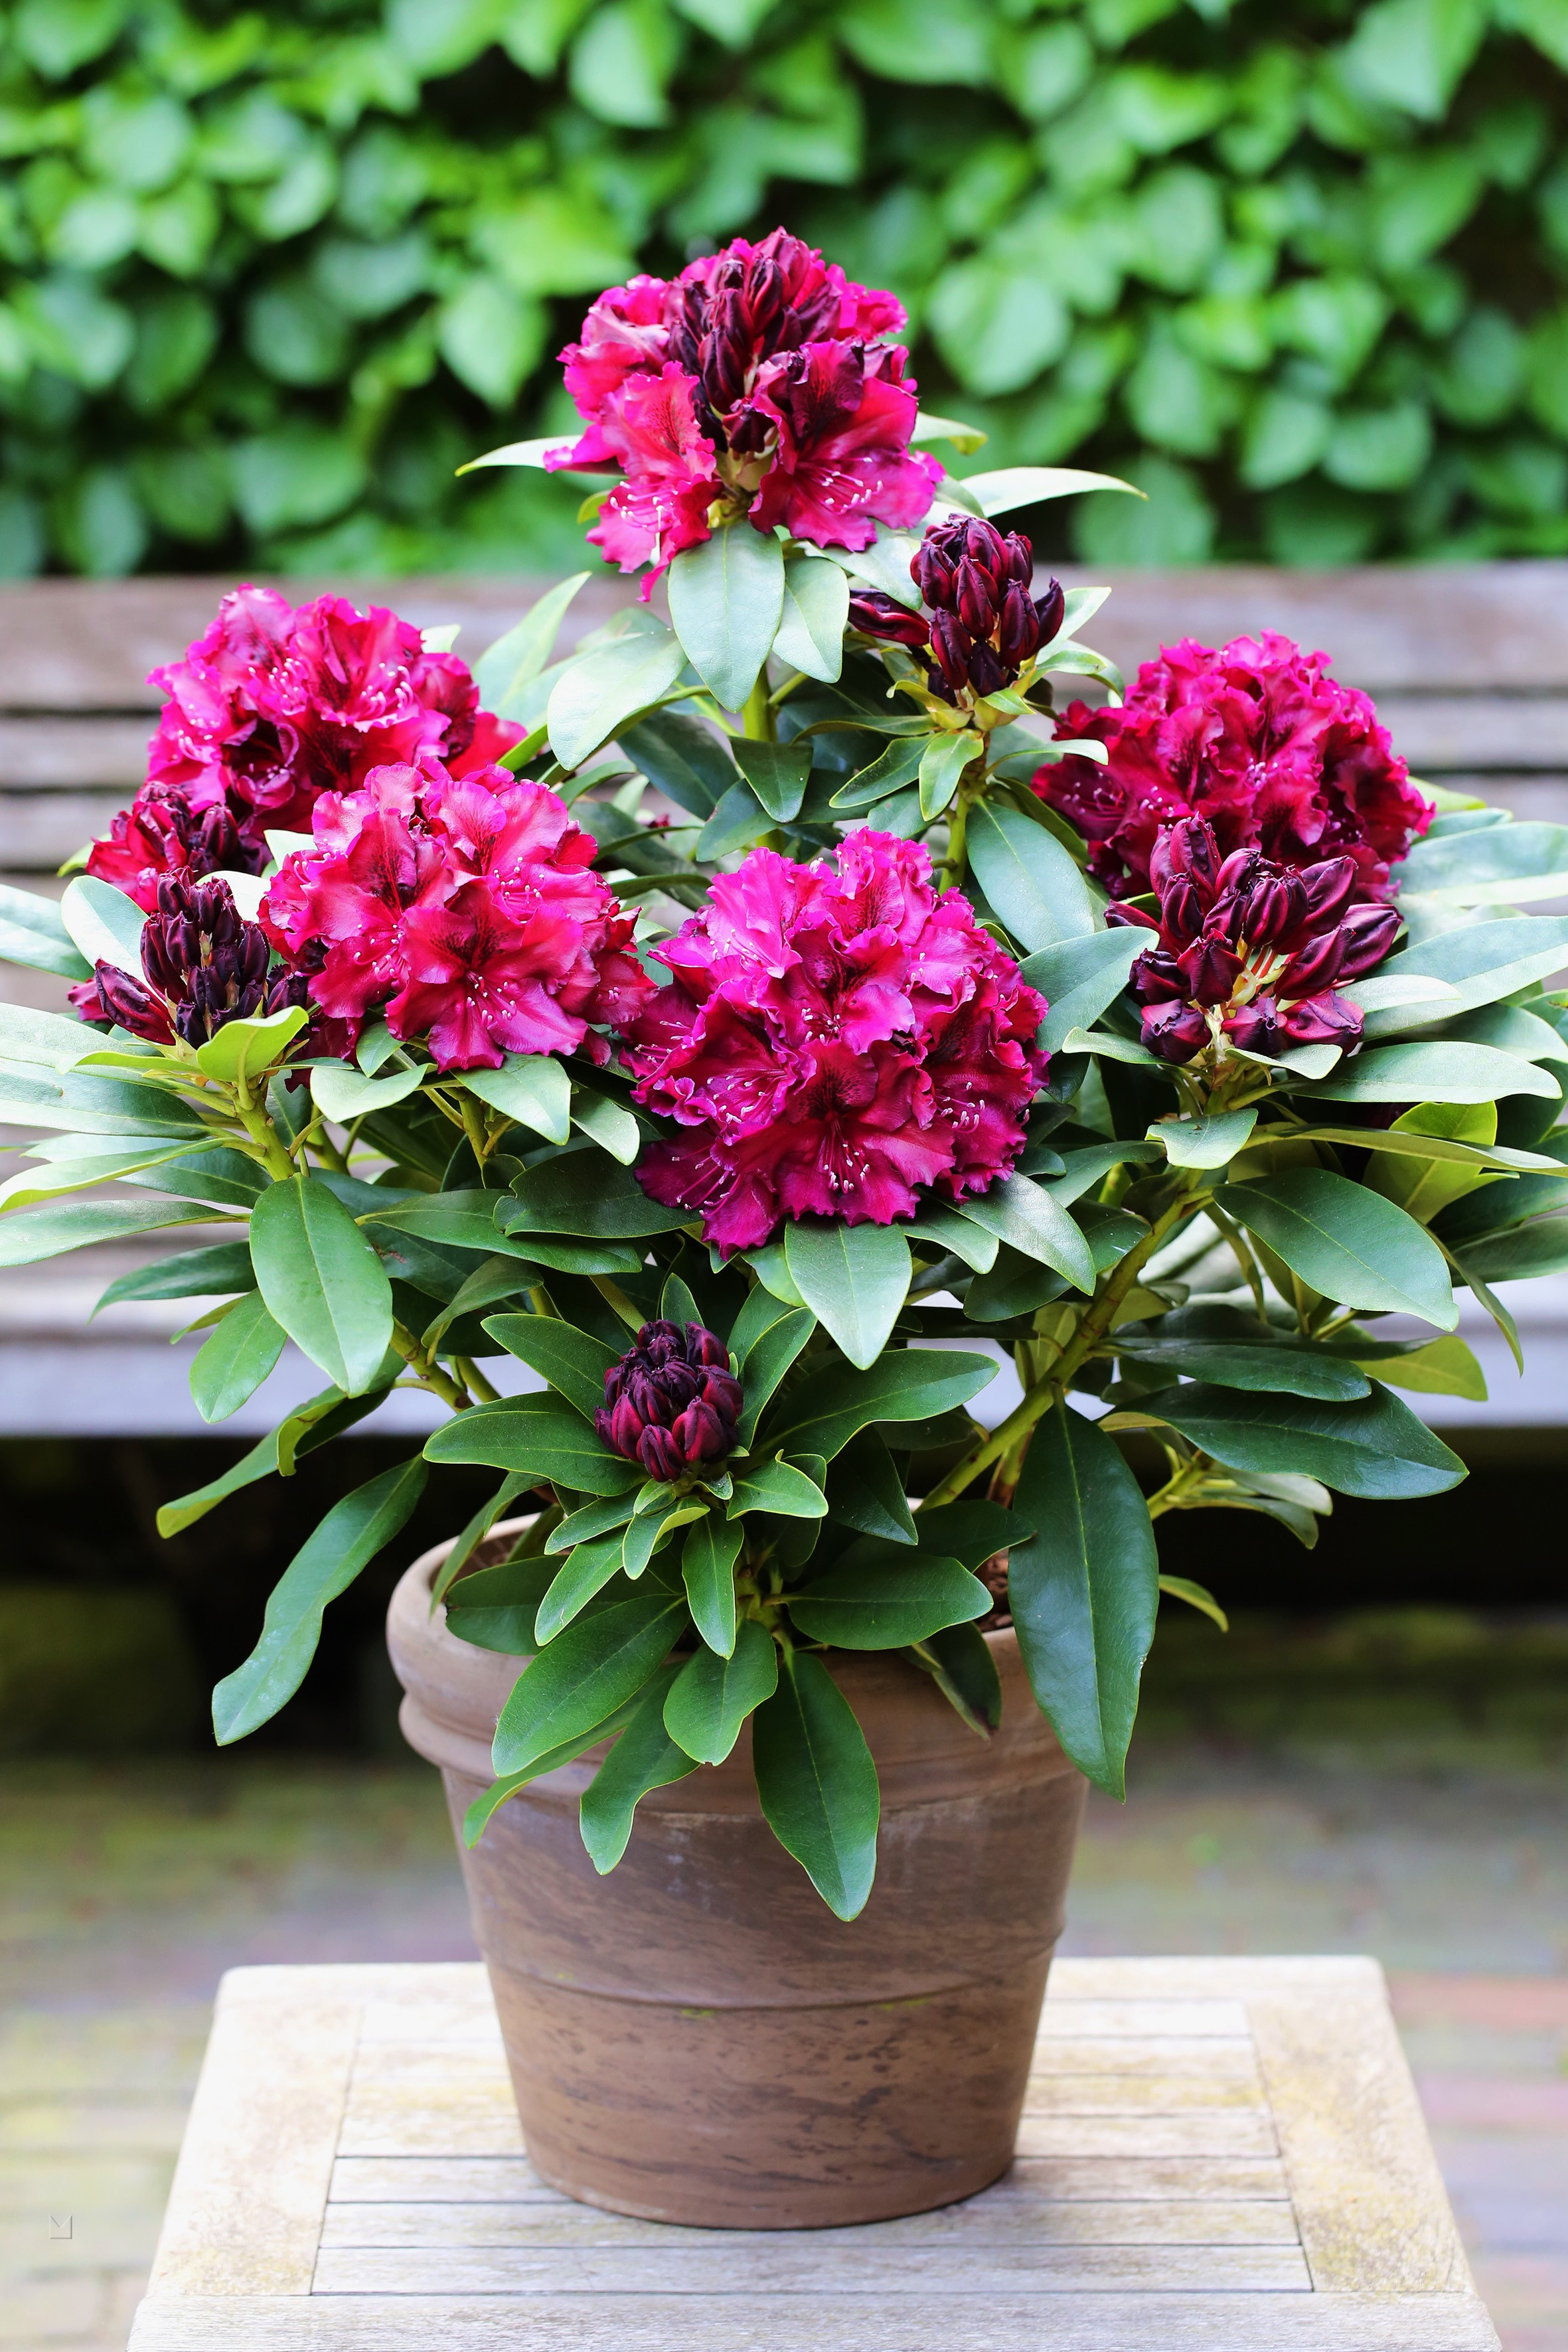 Rhododendron Hybride 'Midnight Beauty'